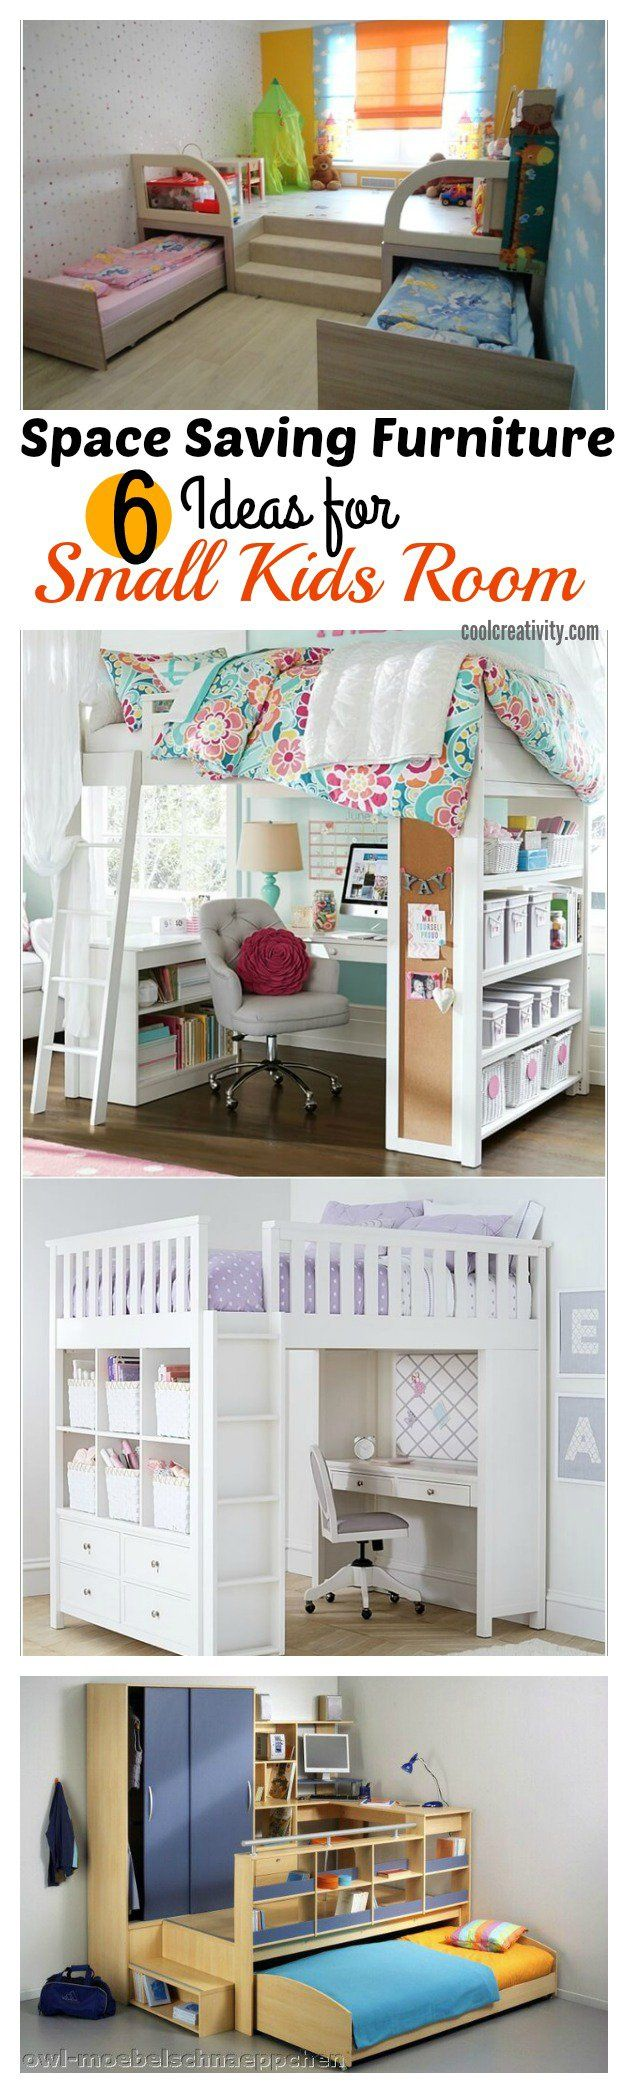 Best 25 small kids playrooms ideas on pinterest - Space saving ideas for small bedrooms ...